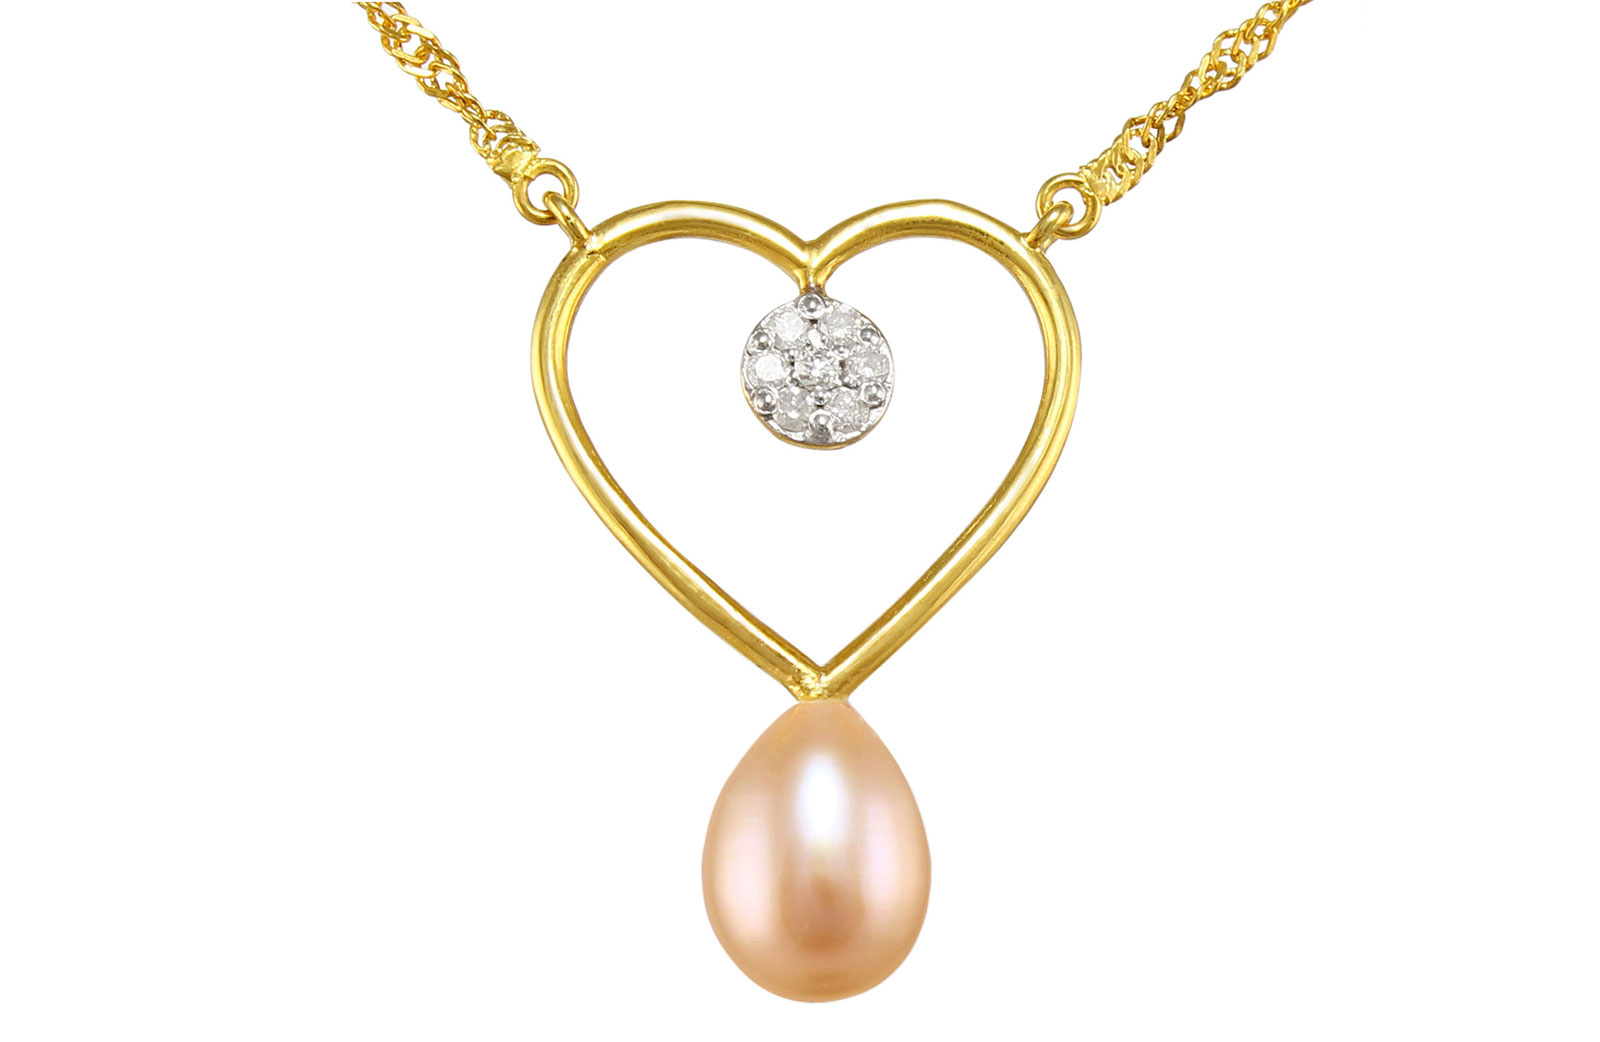 VP Jewels 18K Solid Gold 0.07ct Genuine Diamond and 7mm Pink Pearl Heart Pendant Necklace